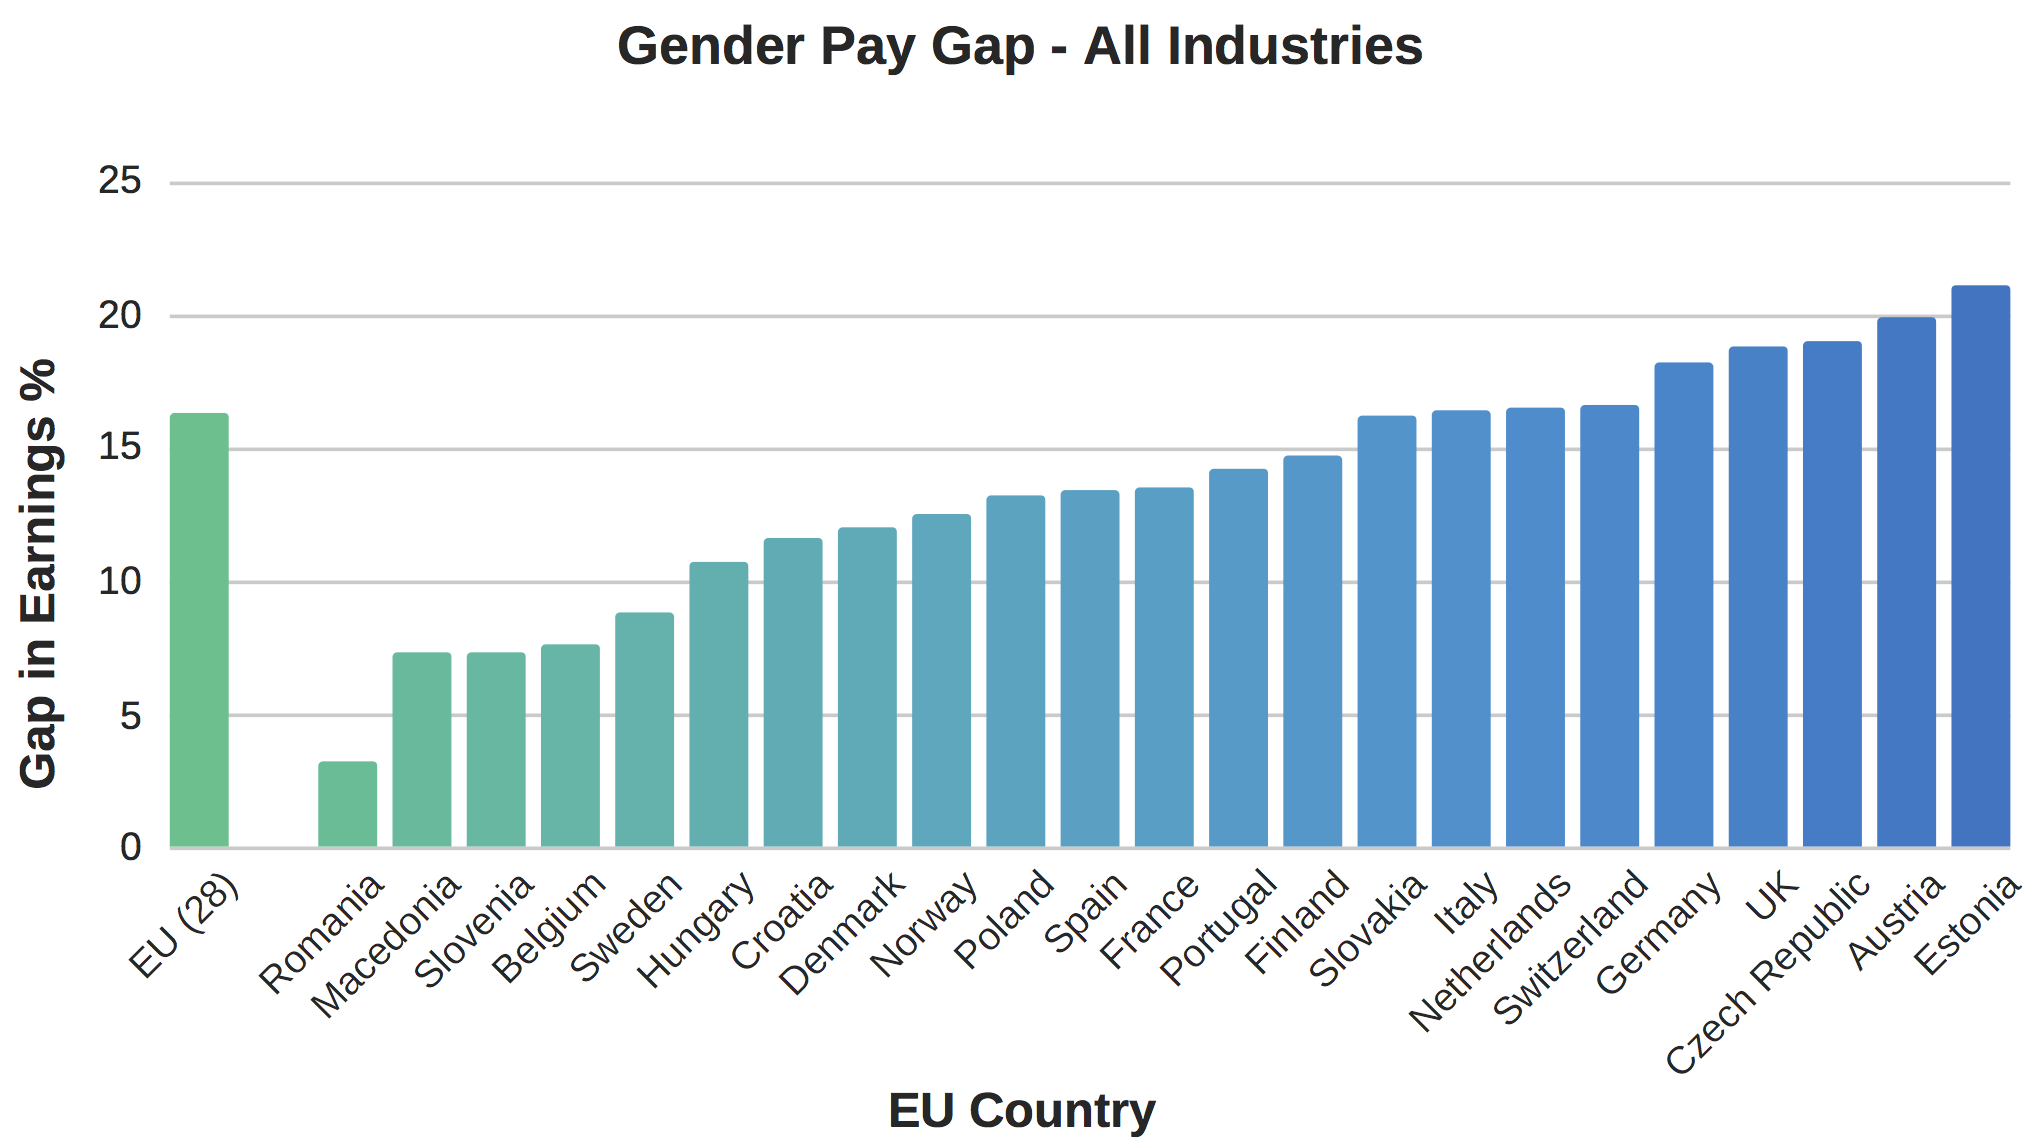 Gender Pay Gap - All Industries